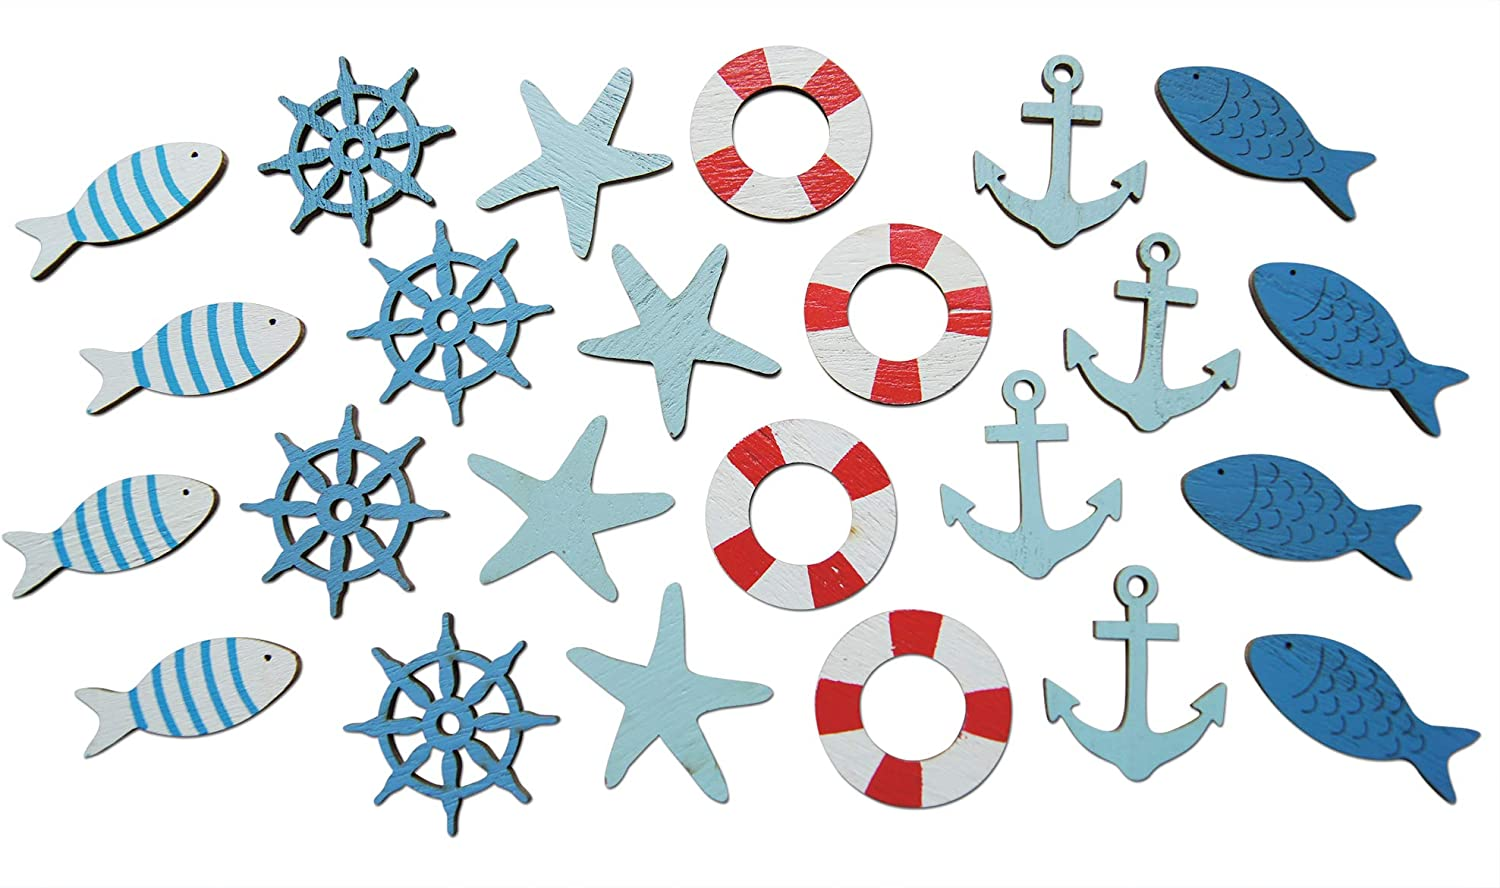 18 Wooden Seaside Embellishments for Adults Crafts